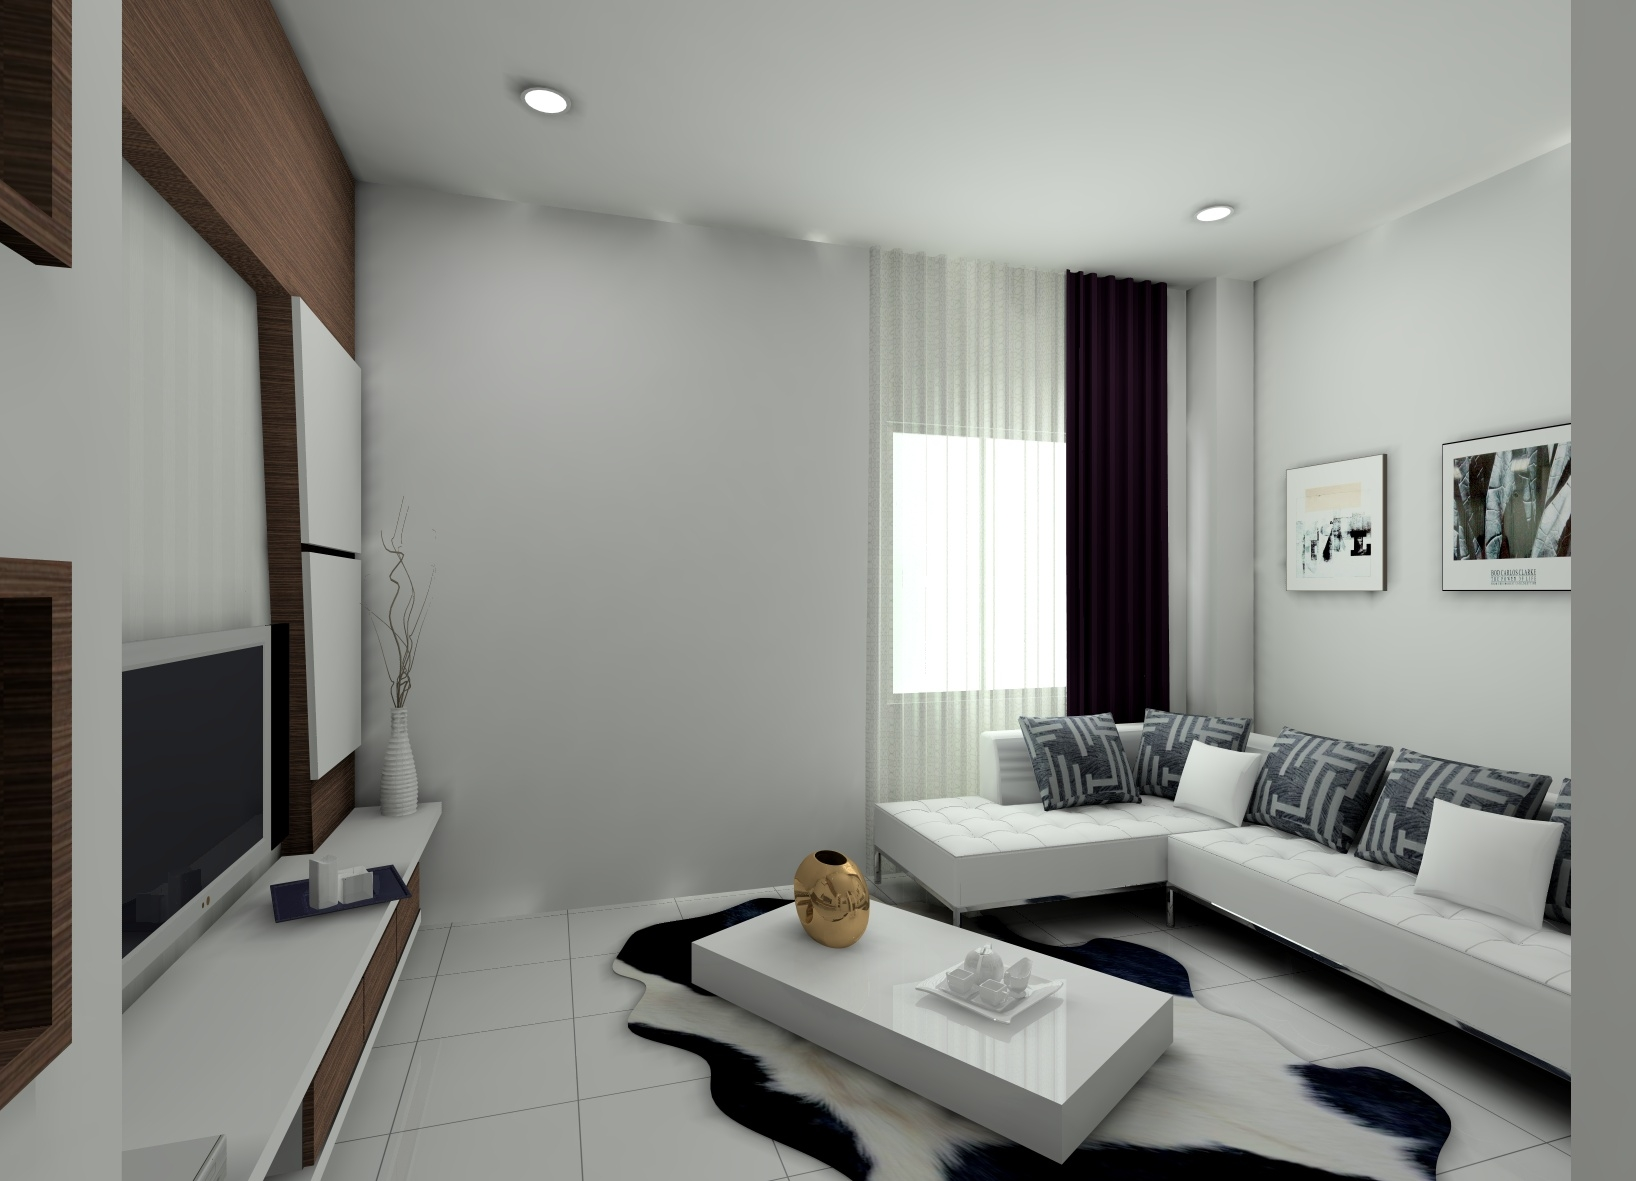 renovate the living room with picture and art - Photos Of Interior Design Living Room